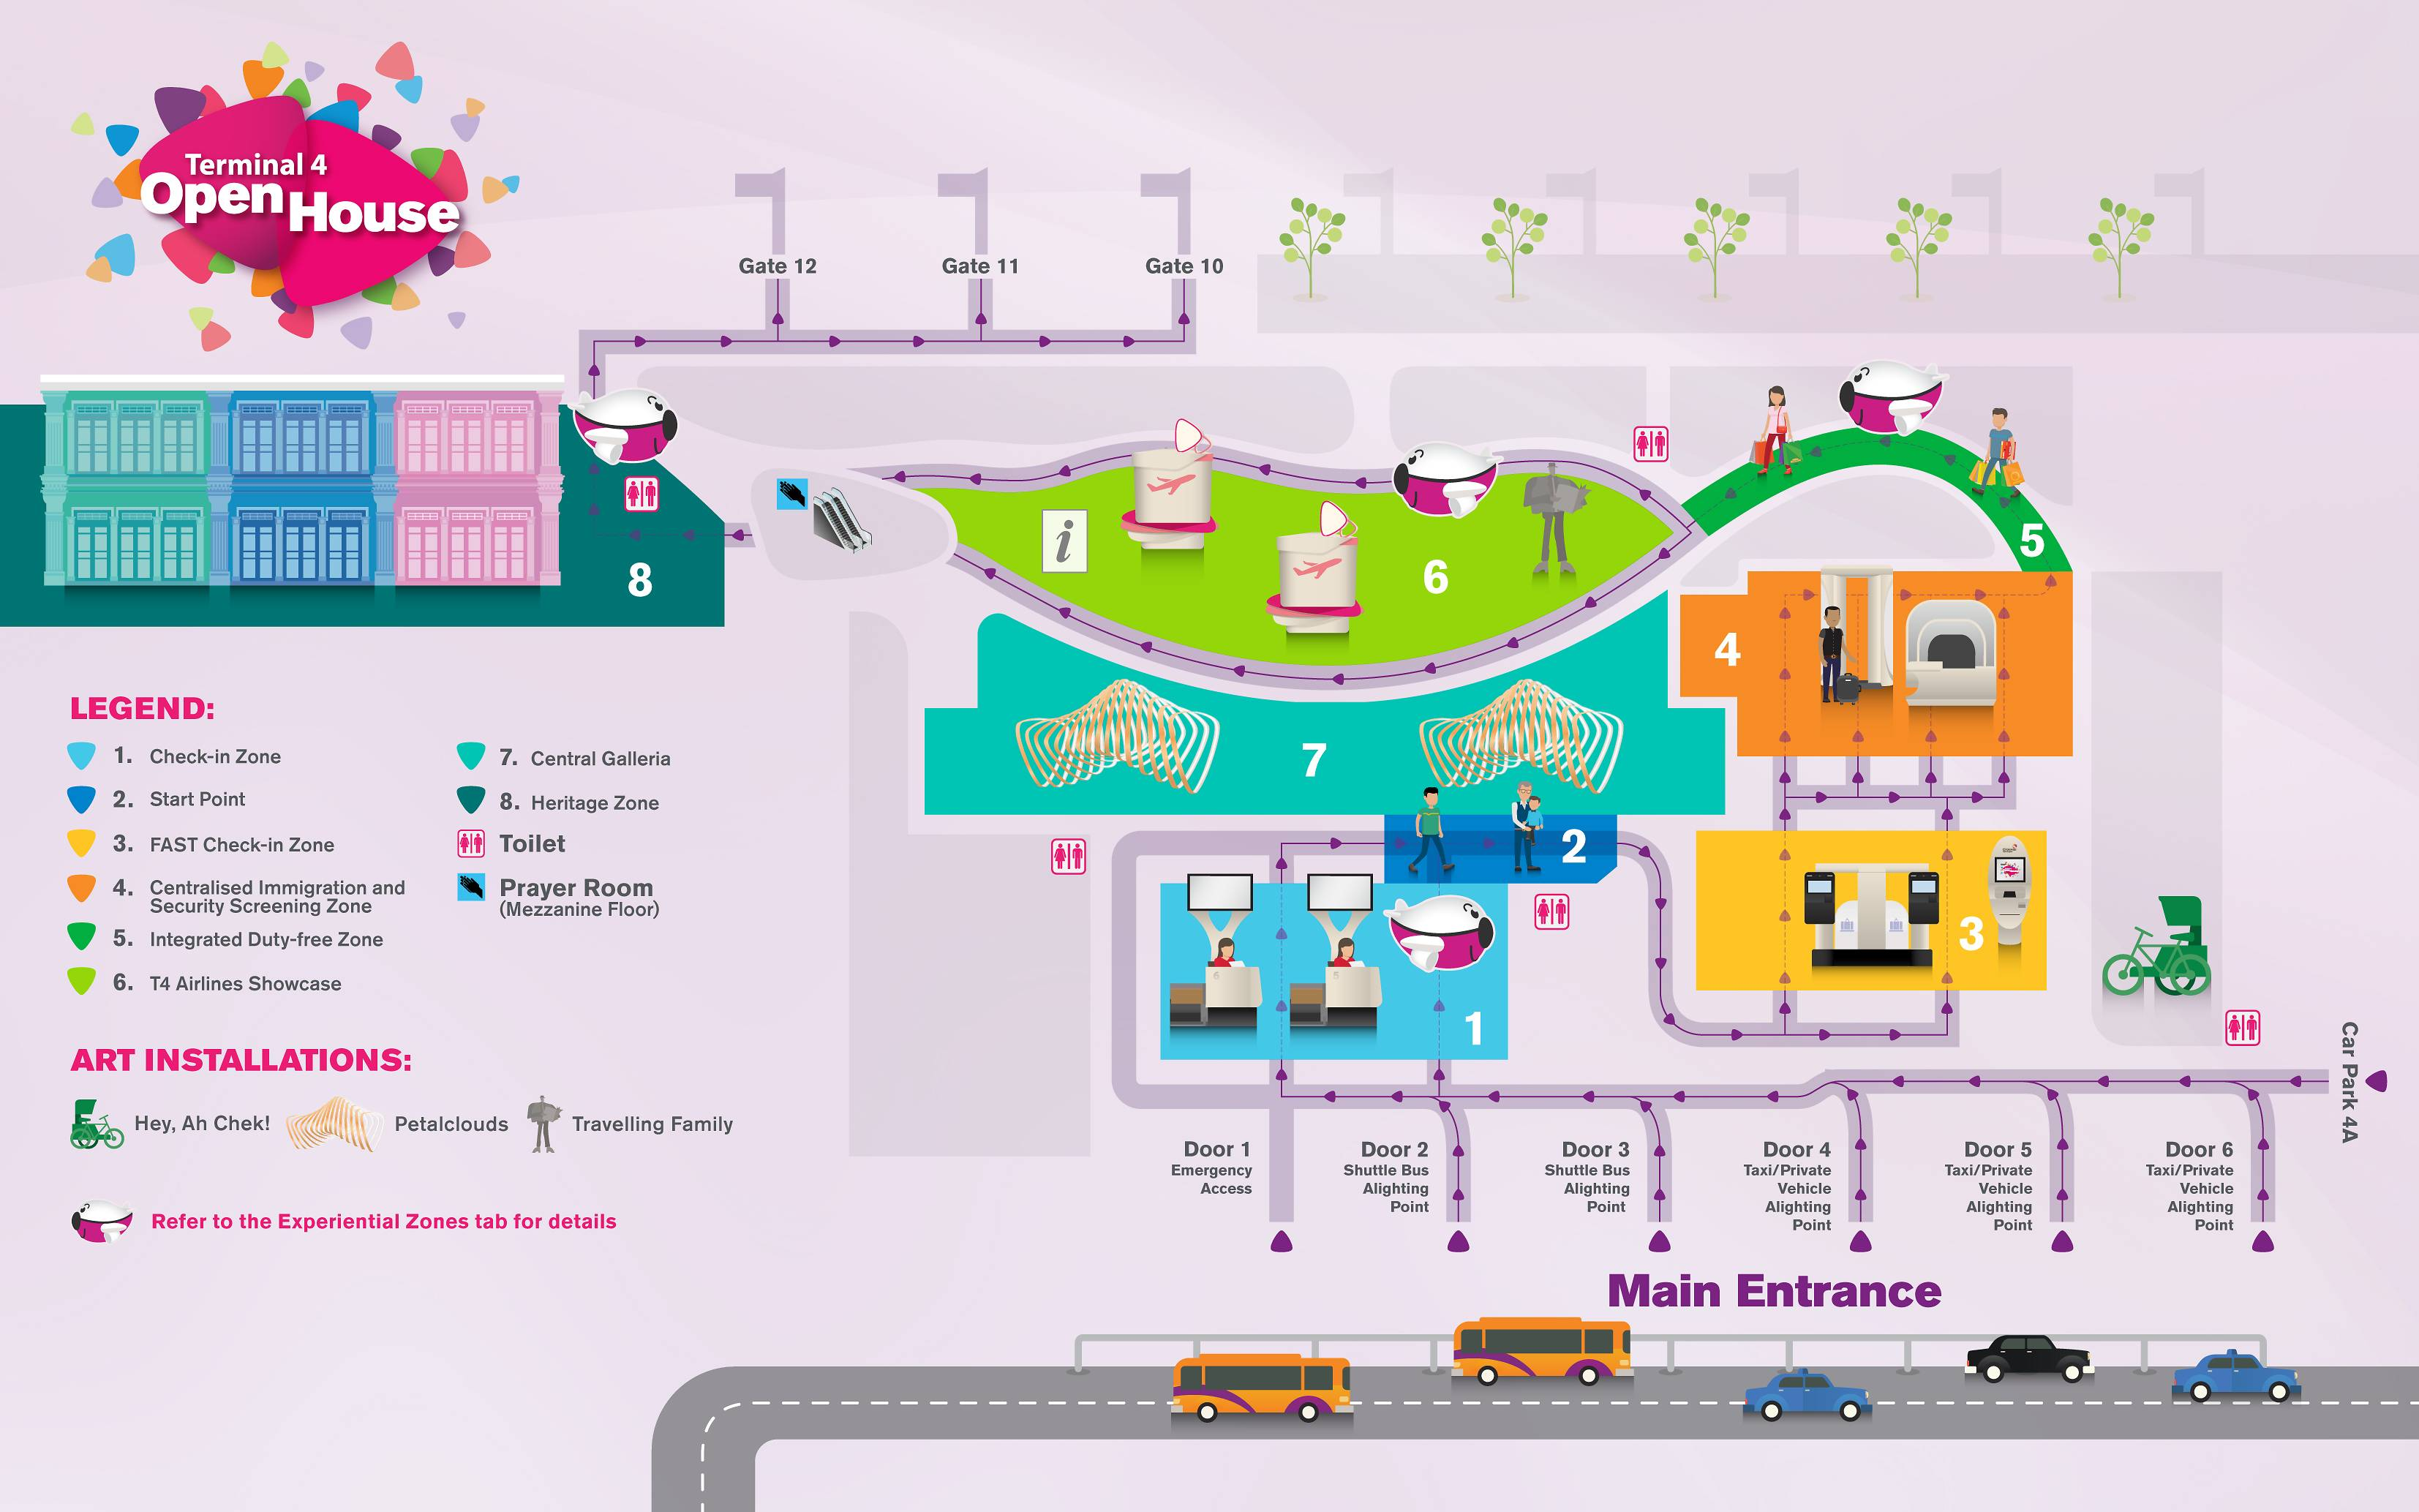 Airport Attractions - Singapore Changi Airport